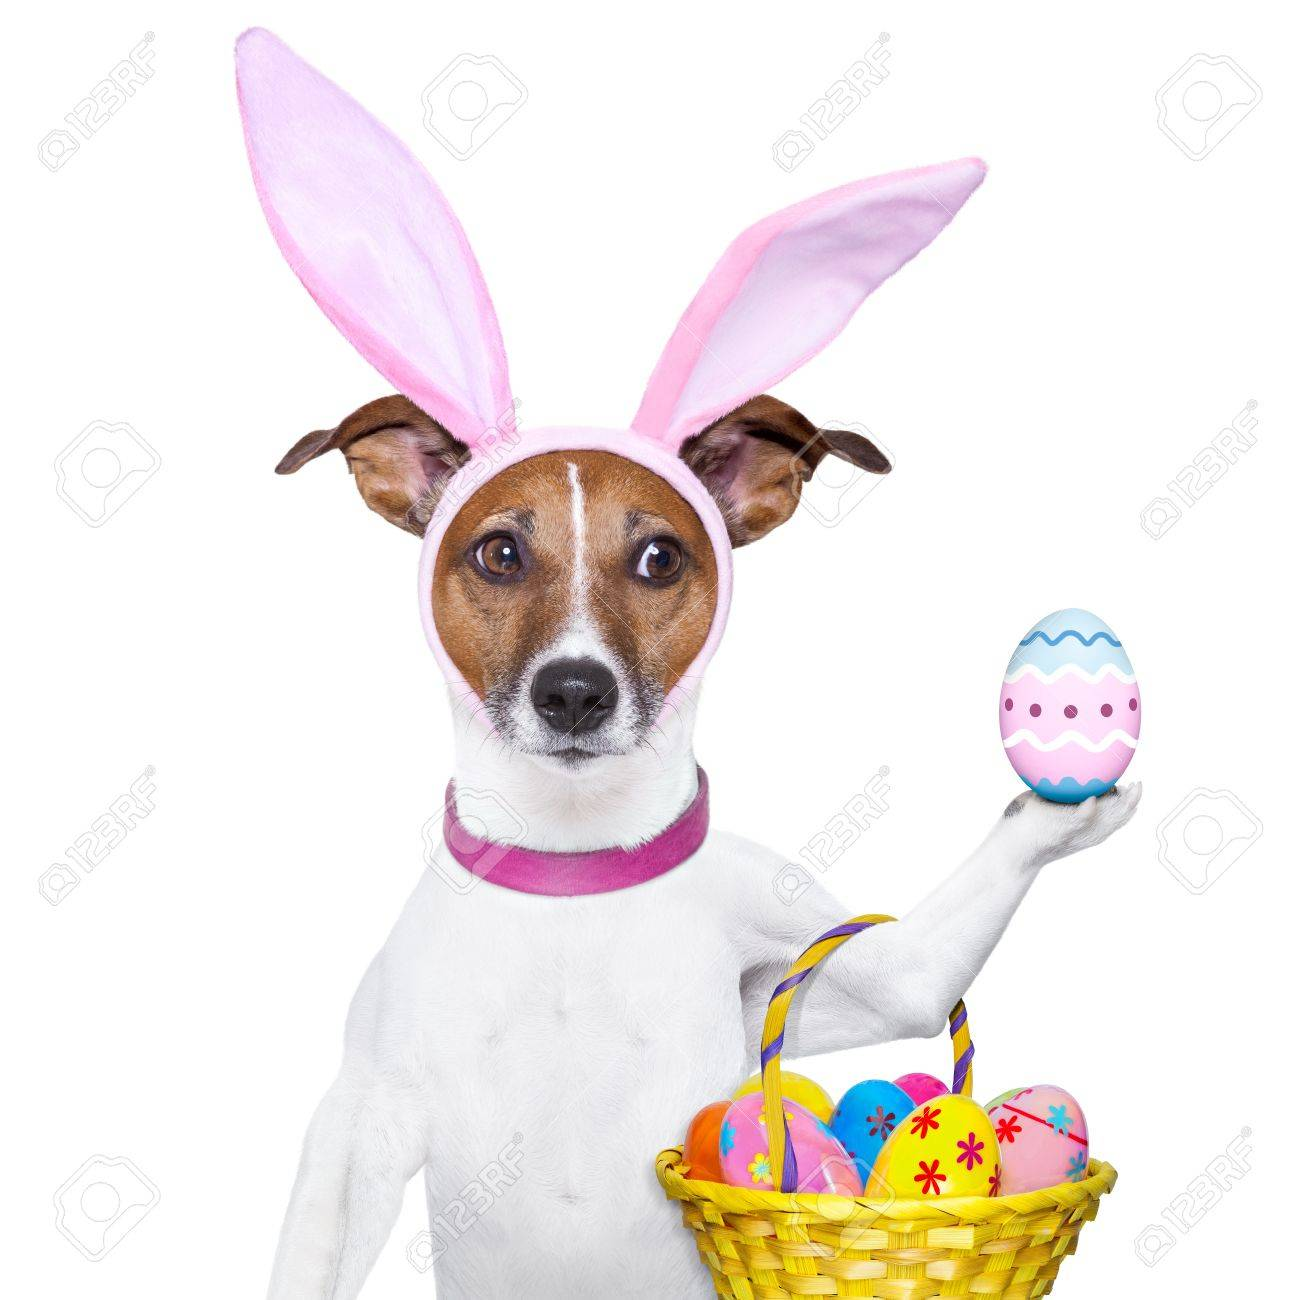 dog dressed up as bunny with easter basket Stock Photo - 18284714